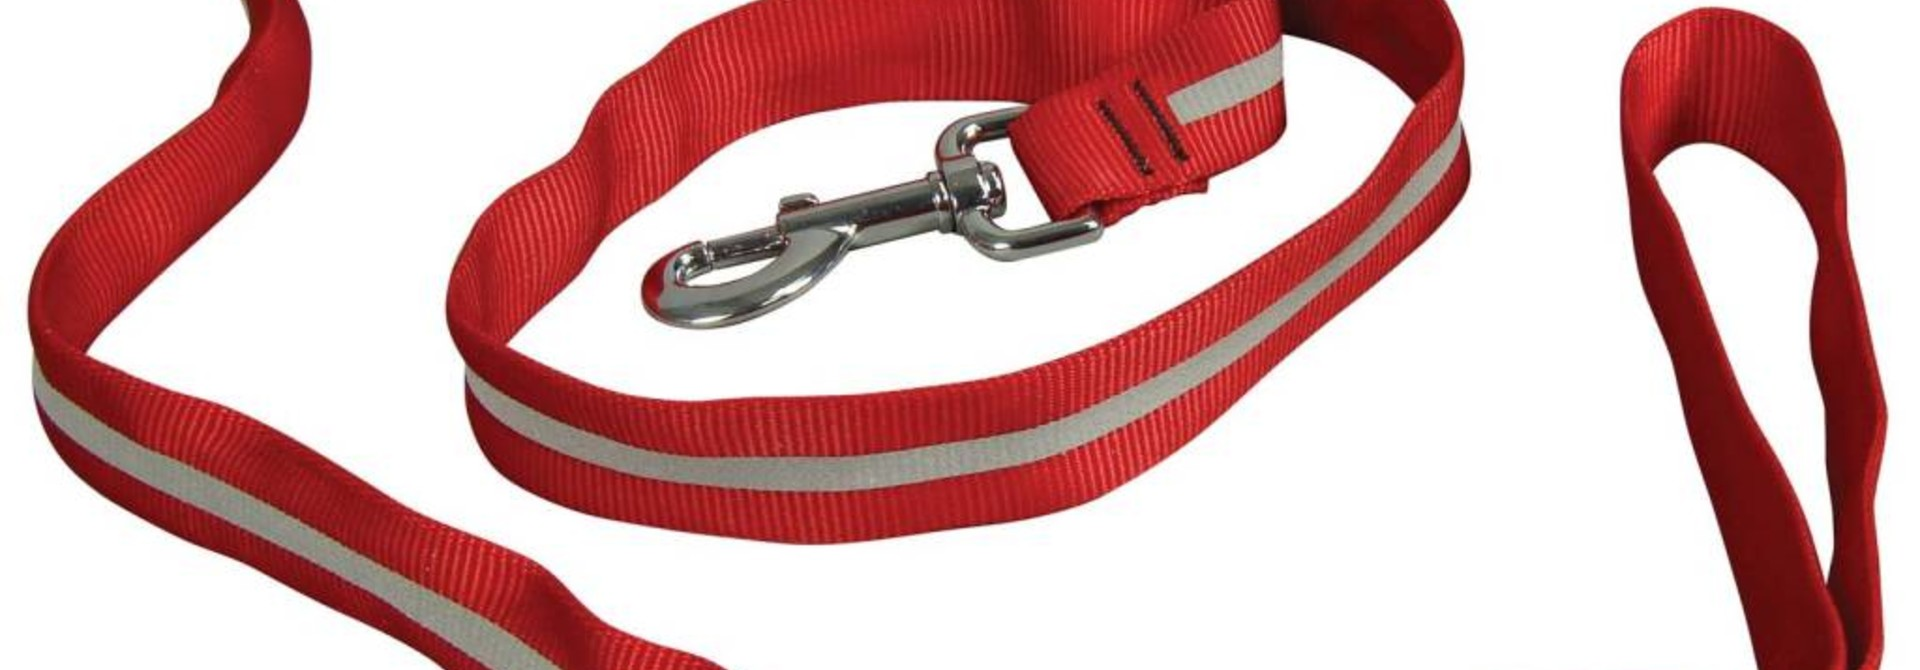 Nitedawg Led Light Up Pet Leash 5 Red Tracker S Pet Supply